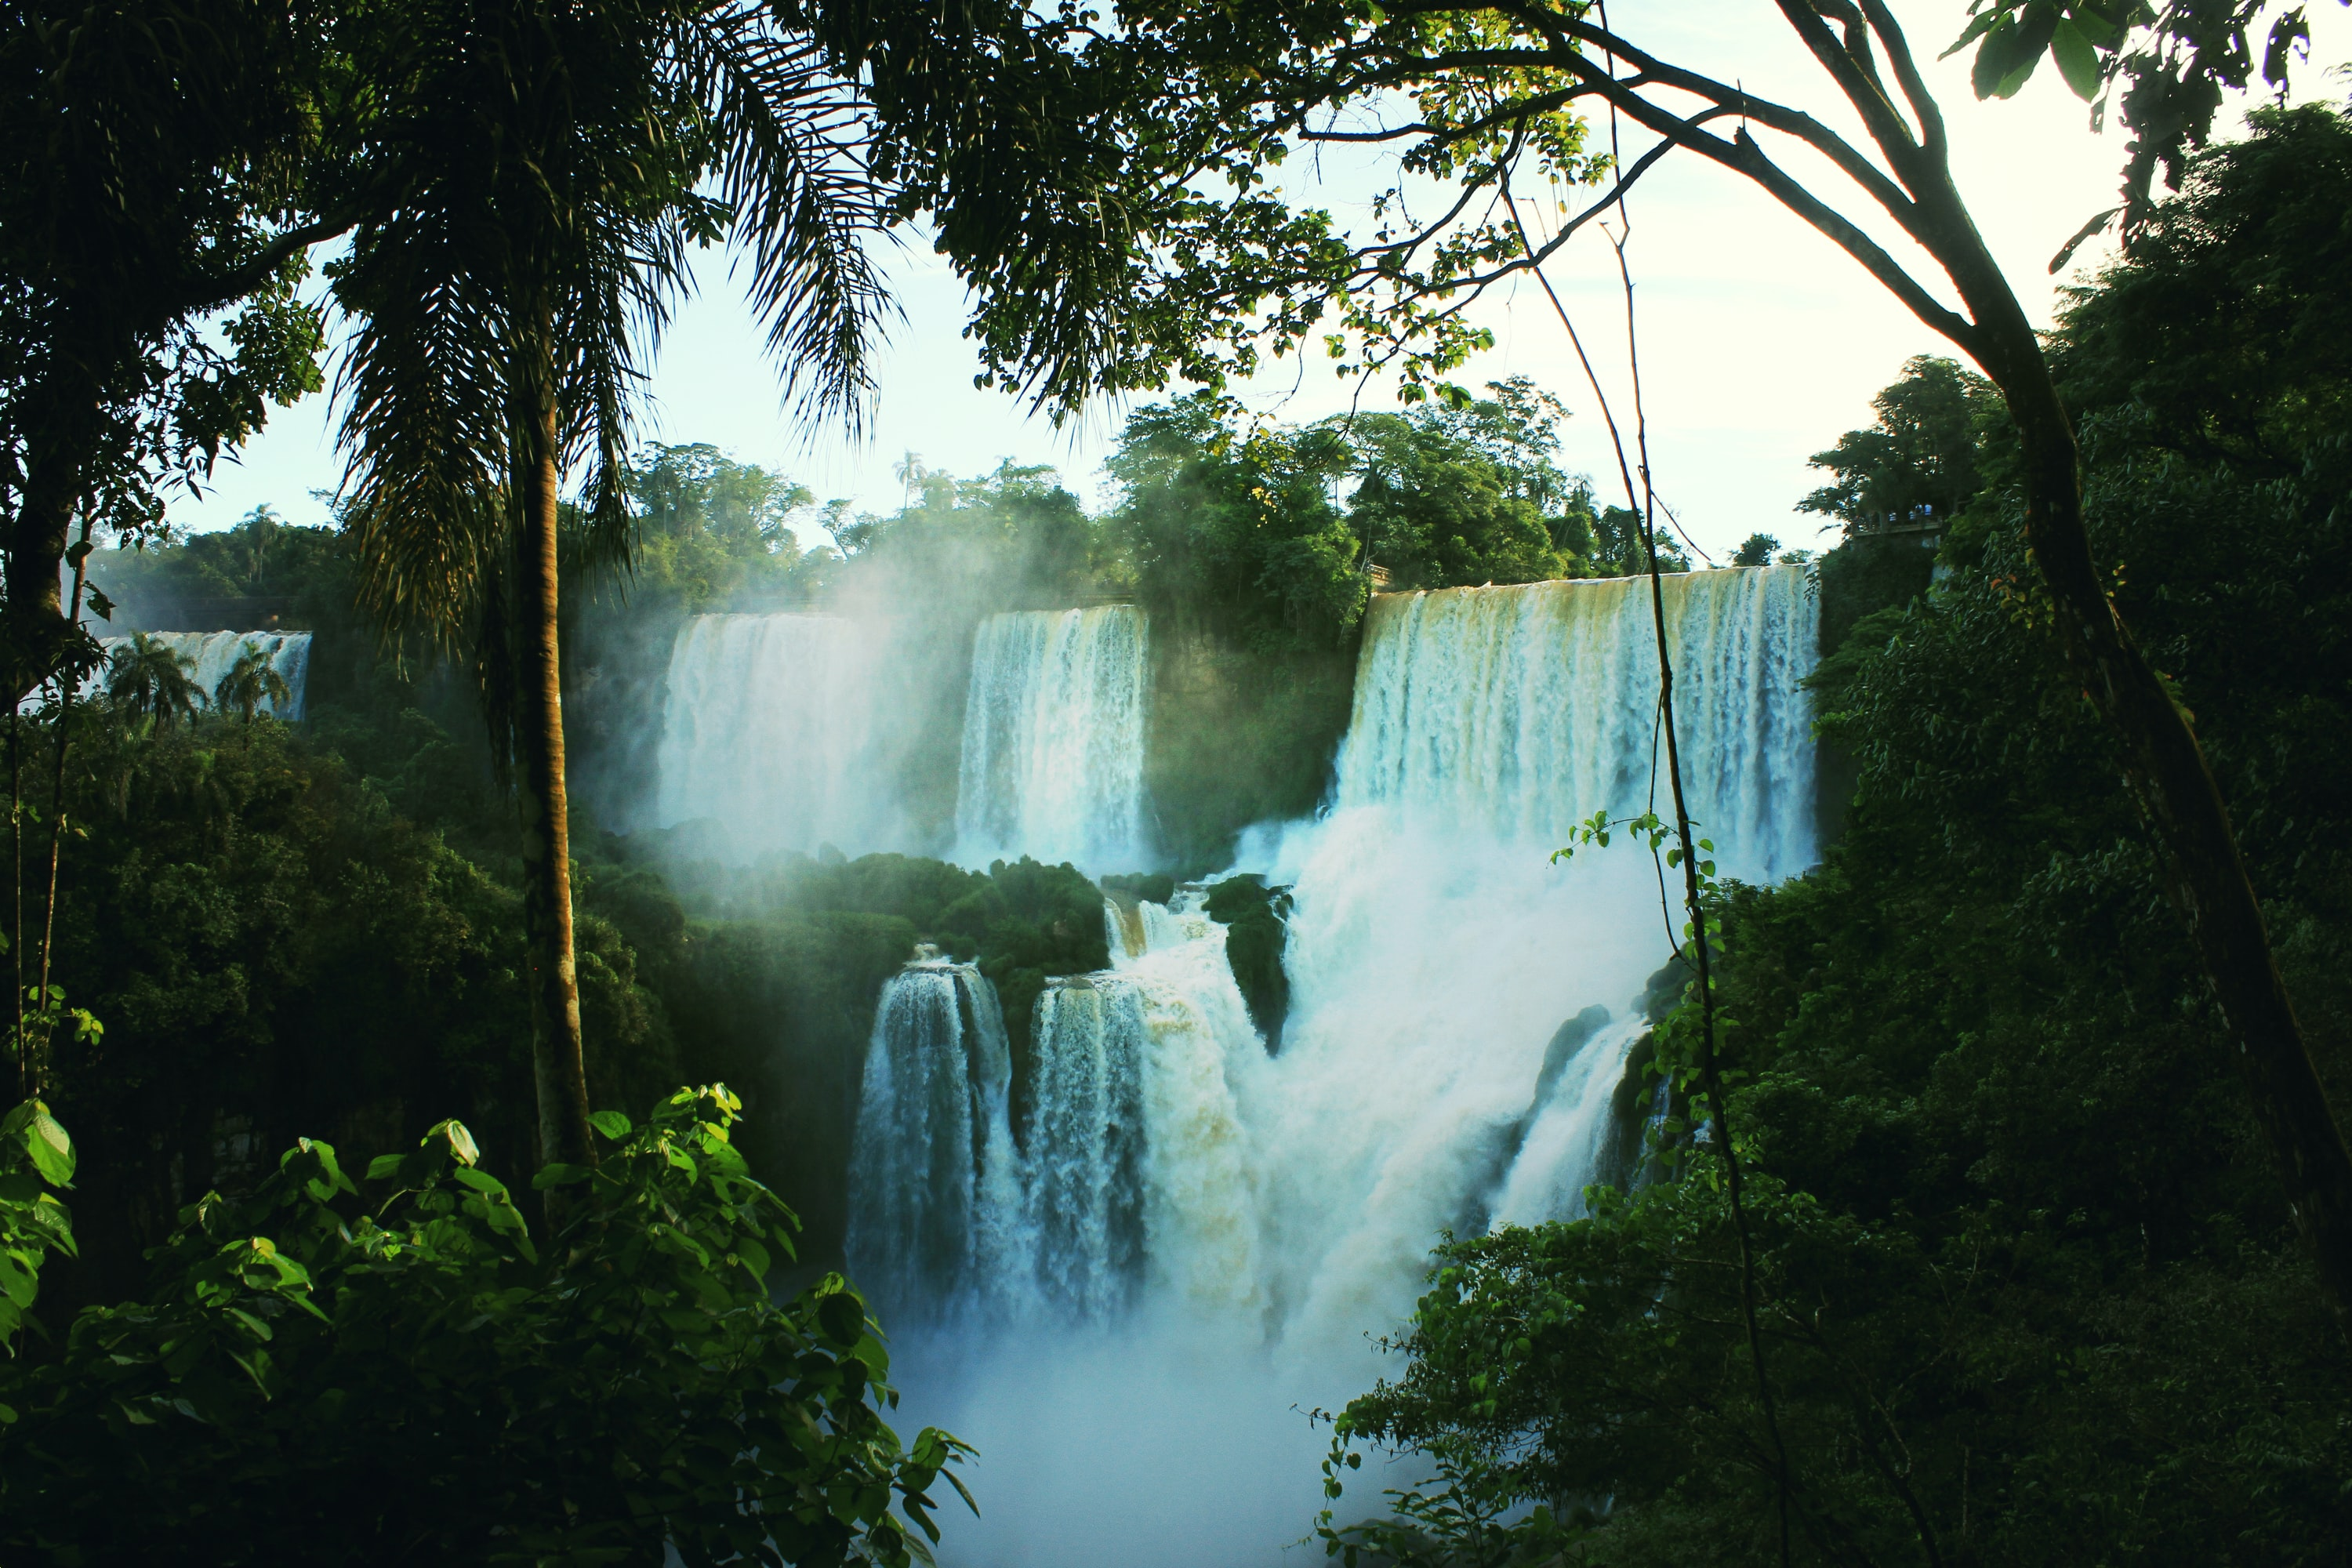 Several waterfalls cascading down in a tropical forest